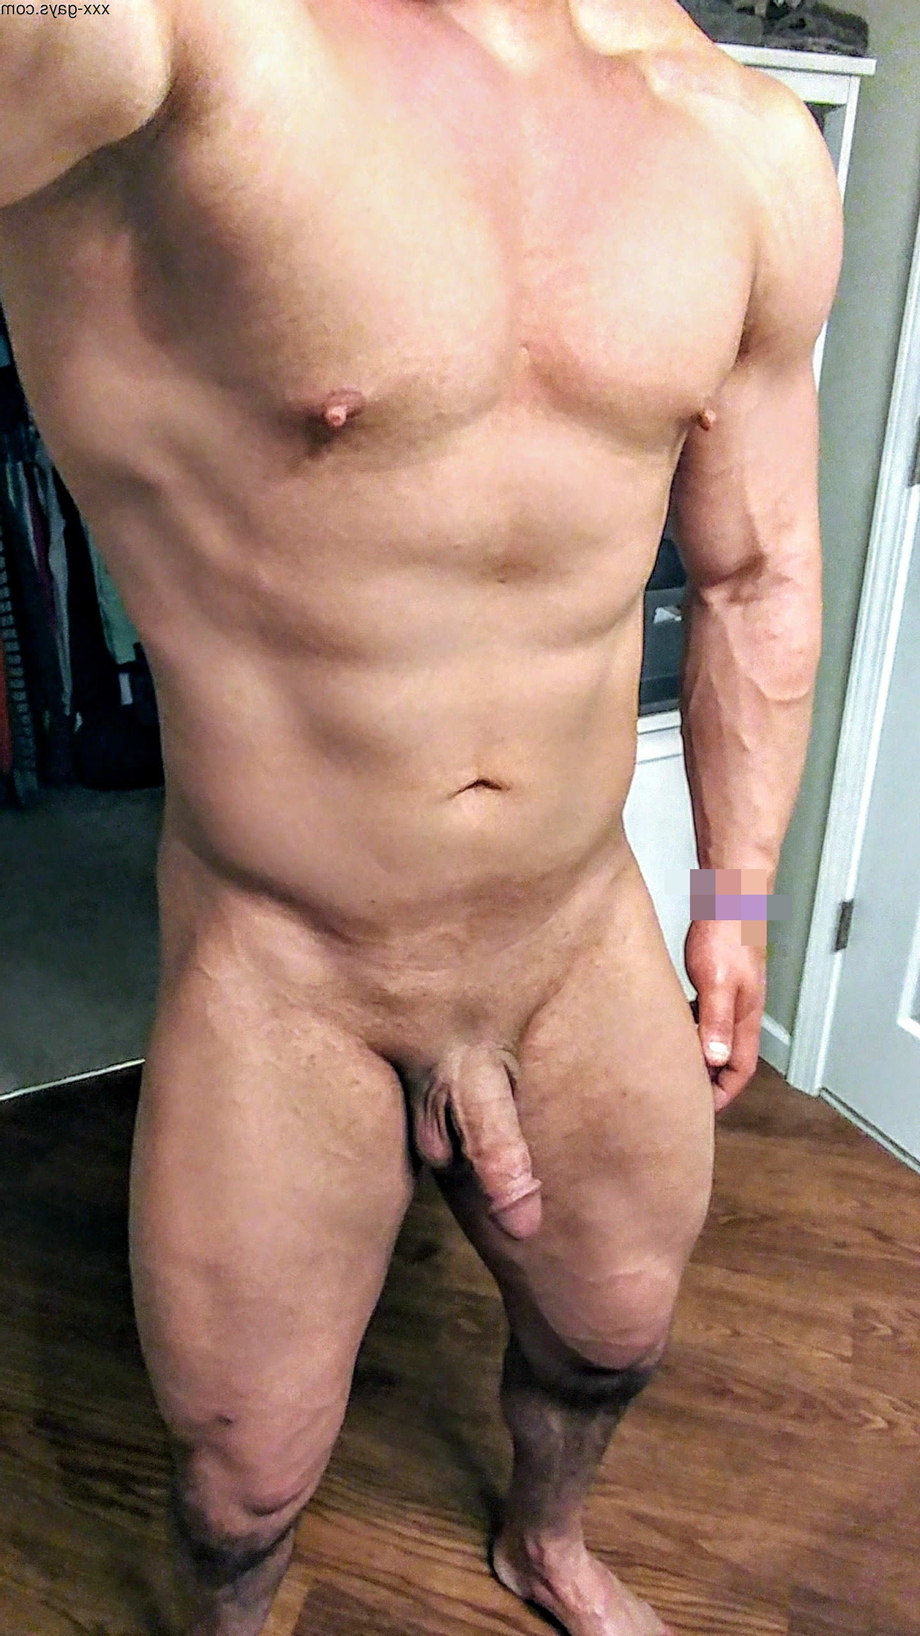 31[M]Woke up too early   Bisexual  Porn XXX   Hot XXX Gays